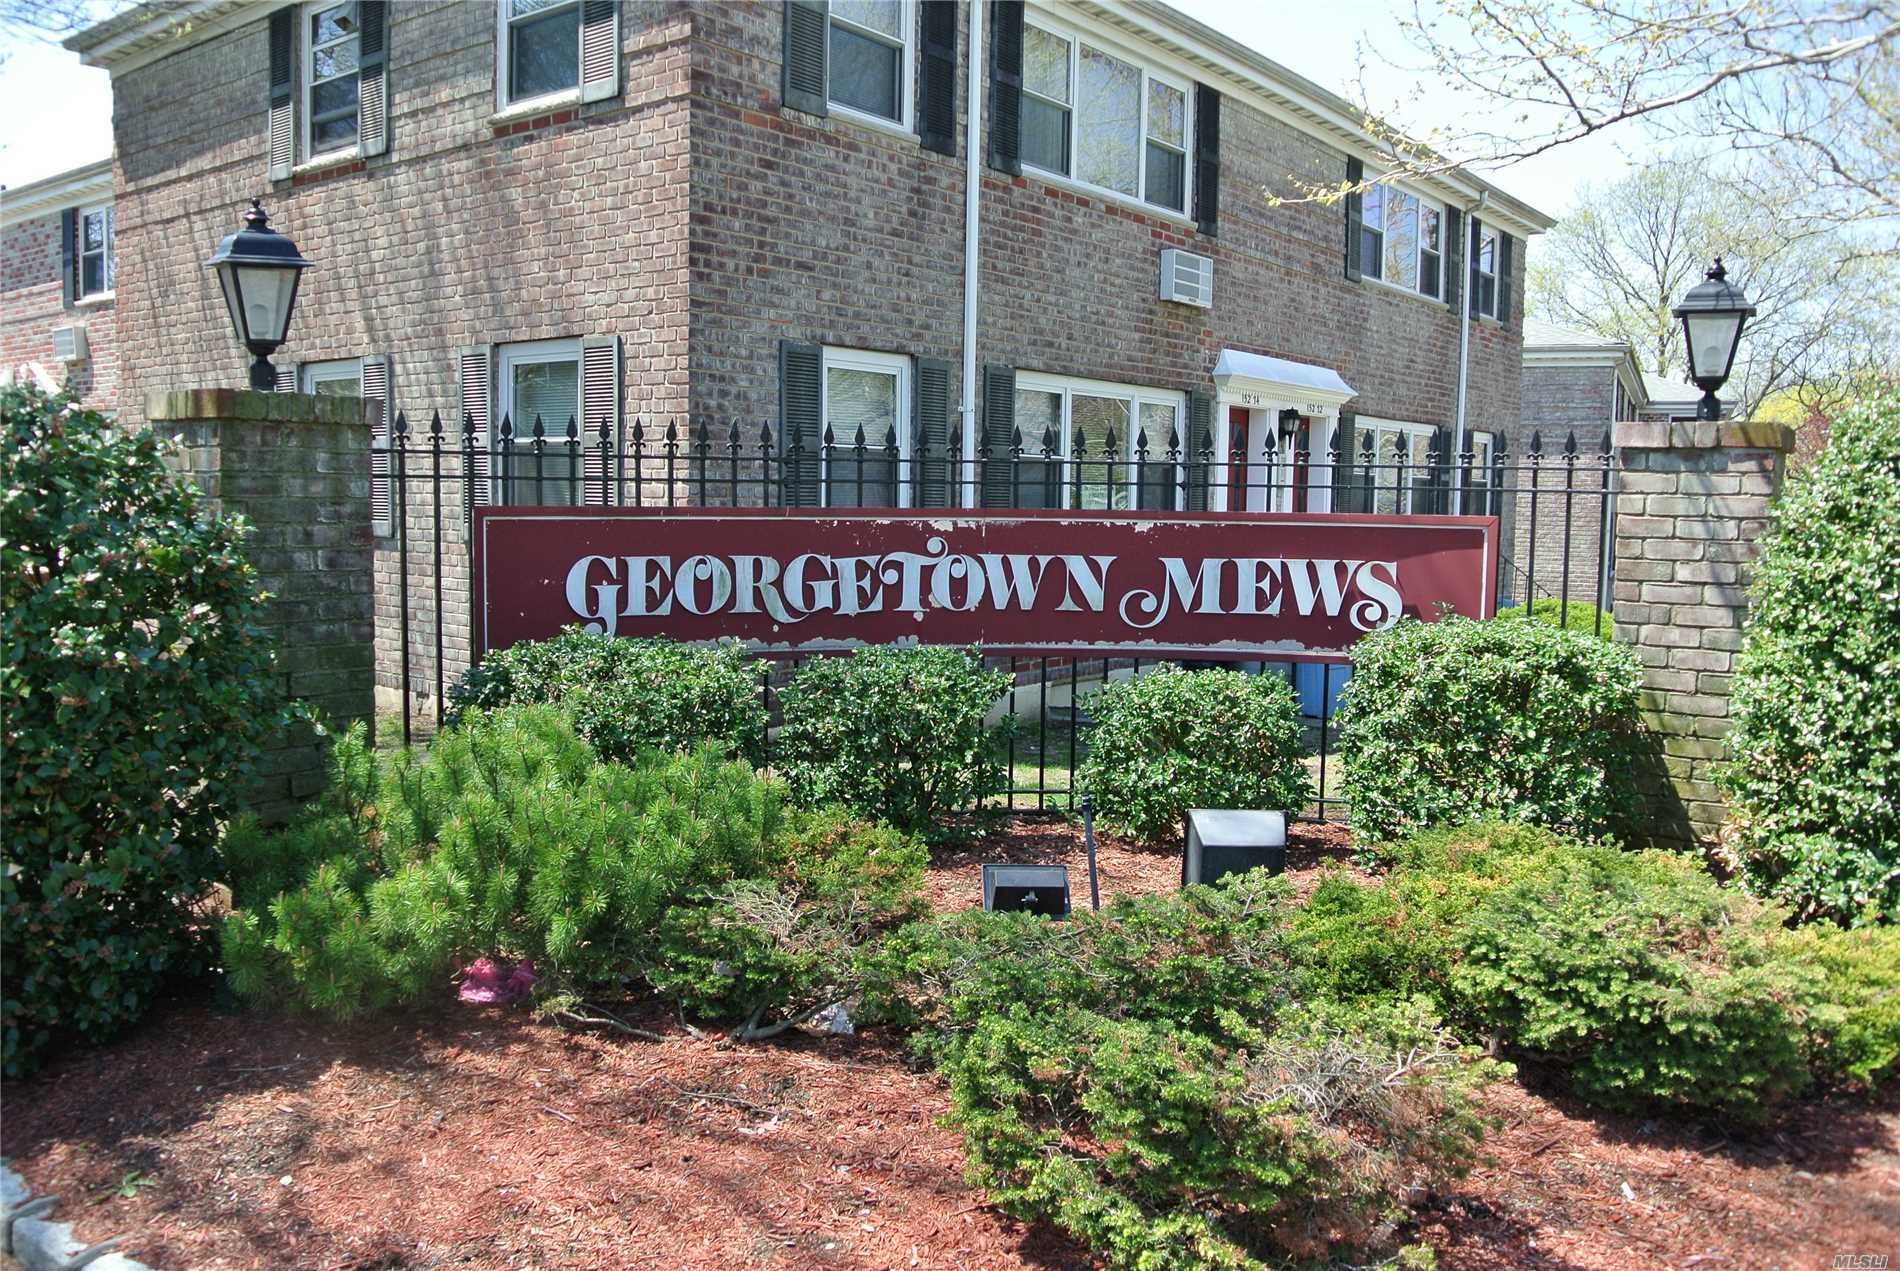 Prime Location! Spacious And Spotless 1st Floor Full 2 Bedroom Garden Style Apt Featuring Renovated Kitchen, Spacious Closets, And Windows In Every Room! Courtyard Setting. Includes 2 Parking Stickers! Pet Friendly. No Flip Tax! Bus Q25, Q34 On Kissena Blvd., Q64 On Jewel Ave. To E, F, Train. Qm4 Express Bus To Manhattan